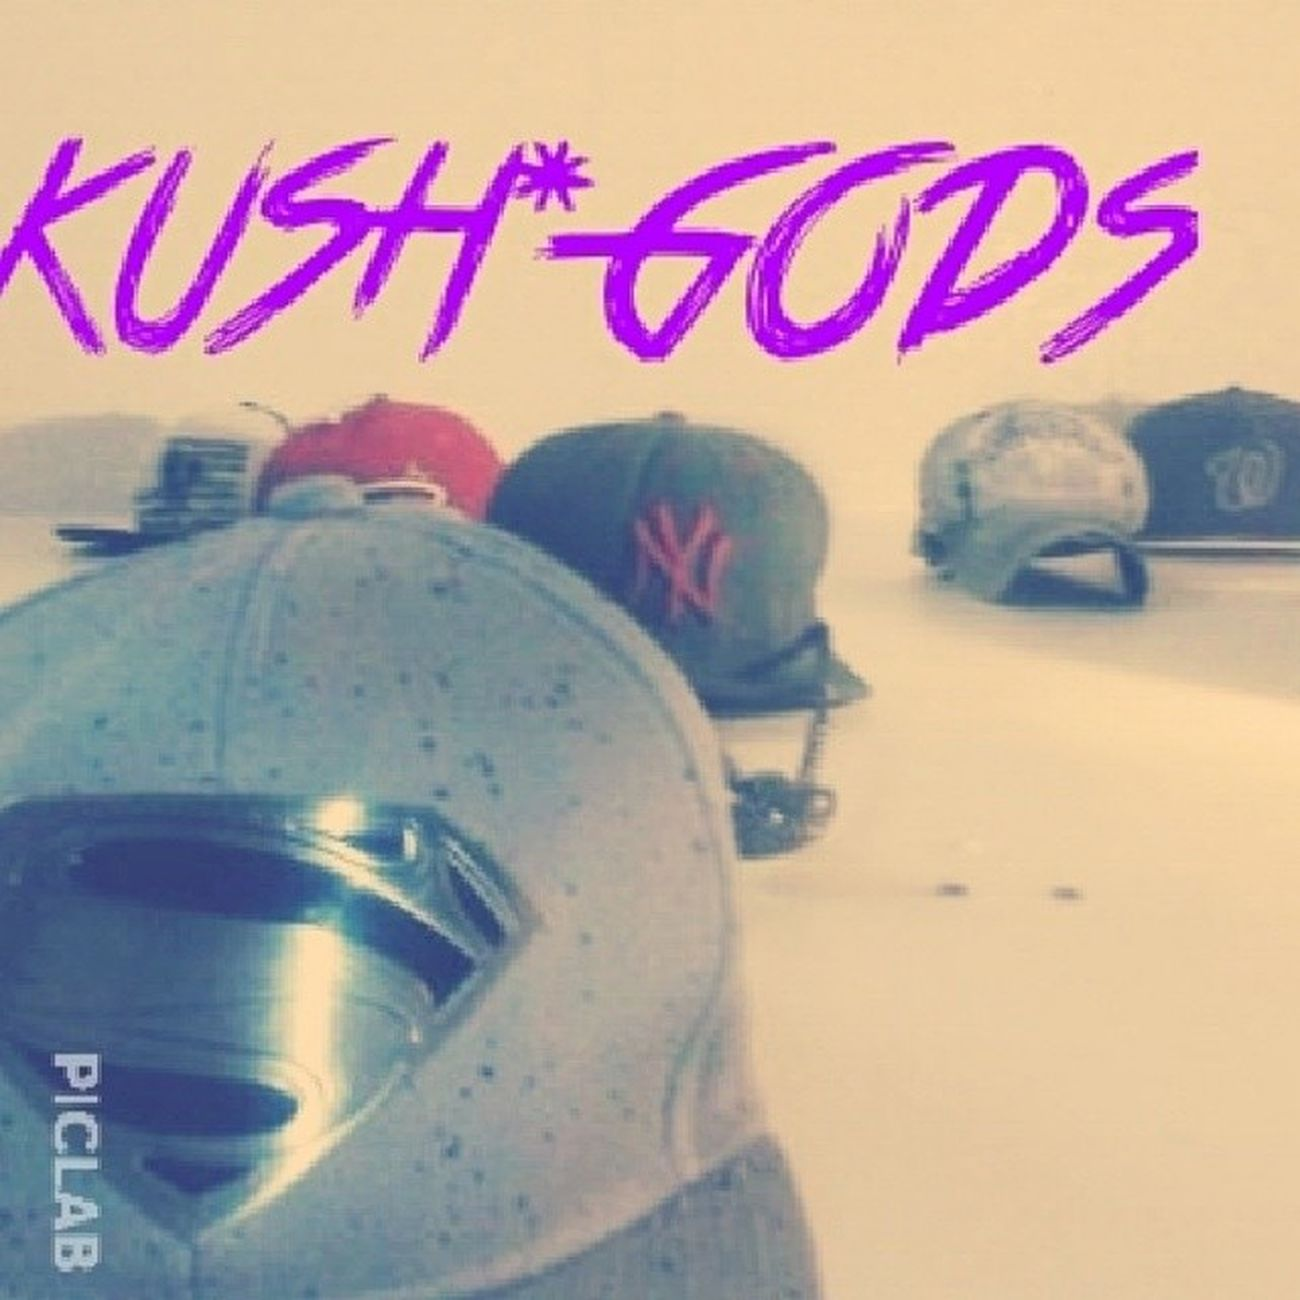 Kushlife Kushgods Hatgame Snapbacks rastalife 420 dope highlife hightimes goinghard cloudnineresidents cloudninesheros causeicanbitch nodoubt